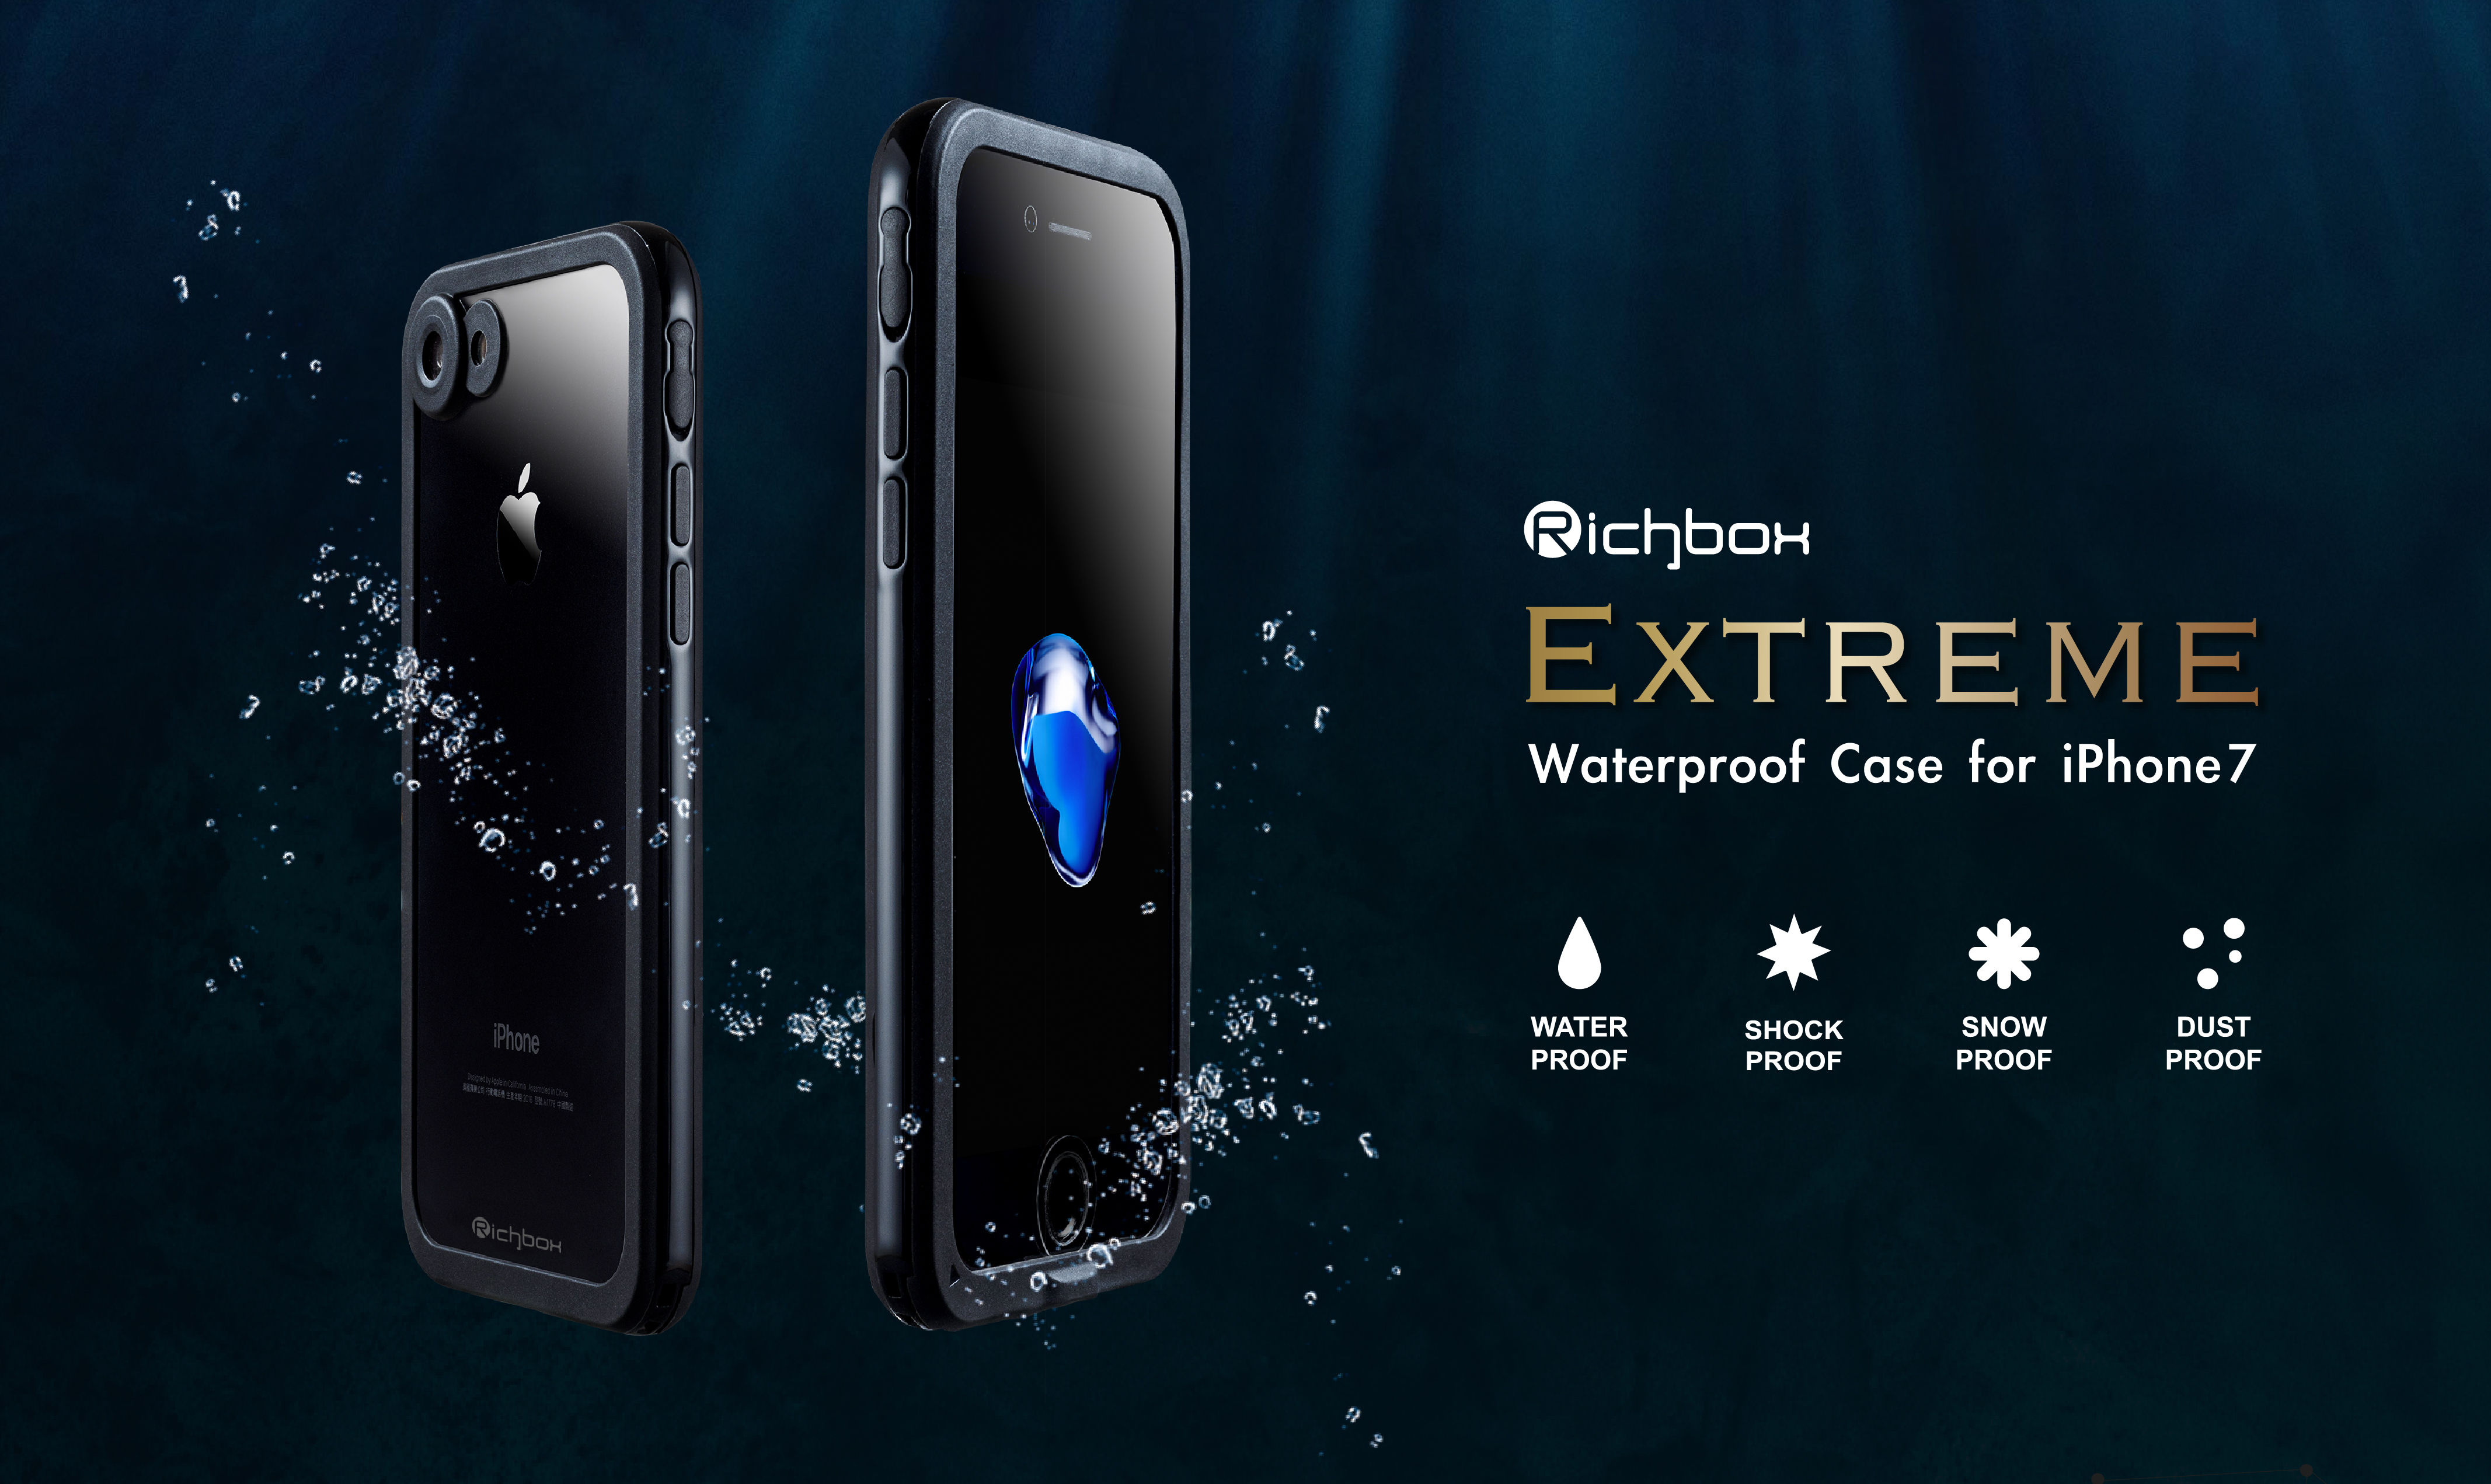 Extreme for iPhone 7 防水・耐衝撃ケース Richbox